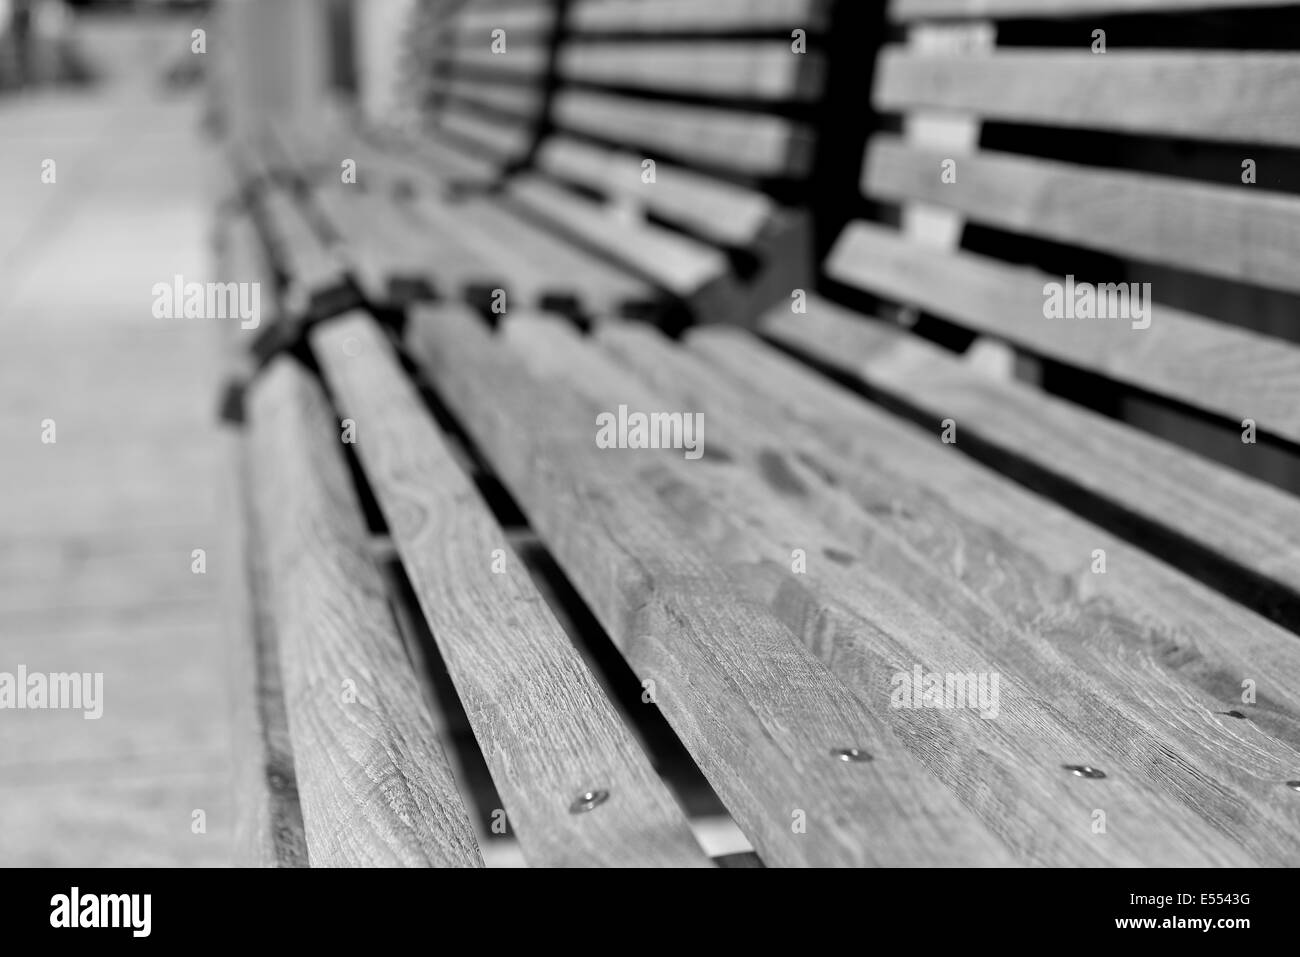 Leer banks in black and white - Stock Image